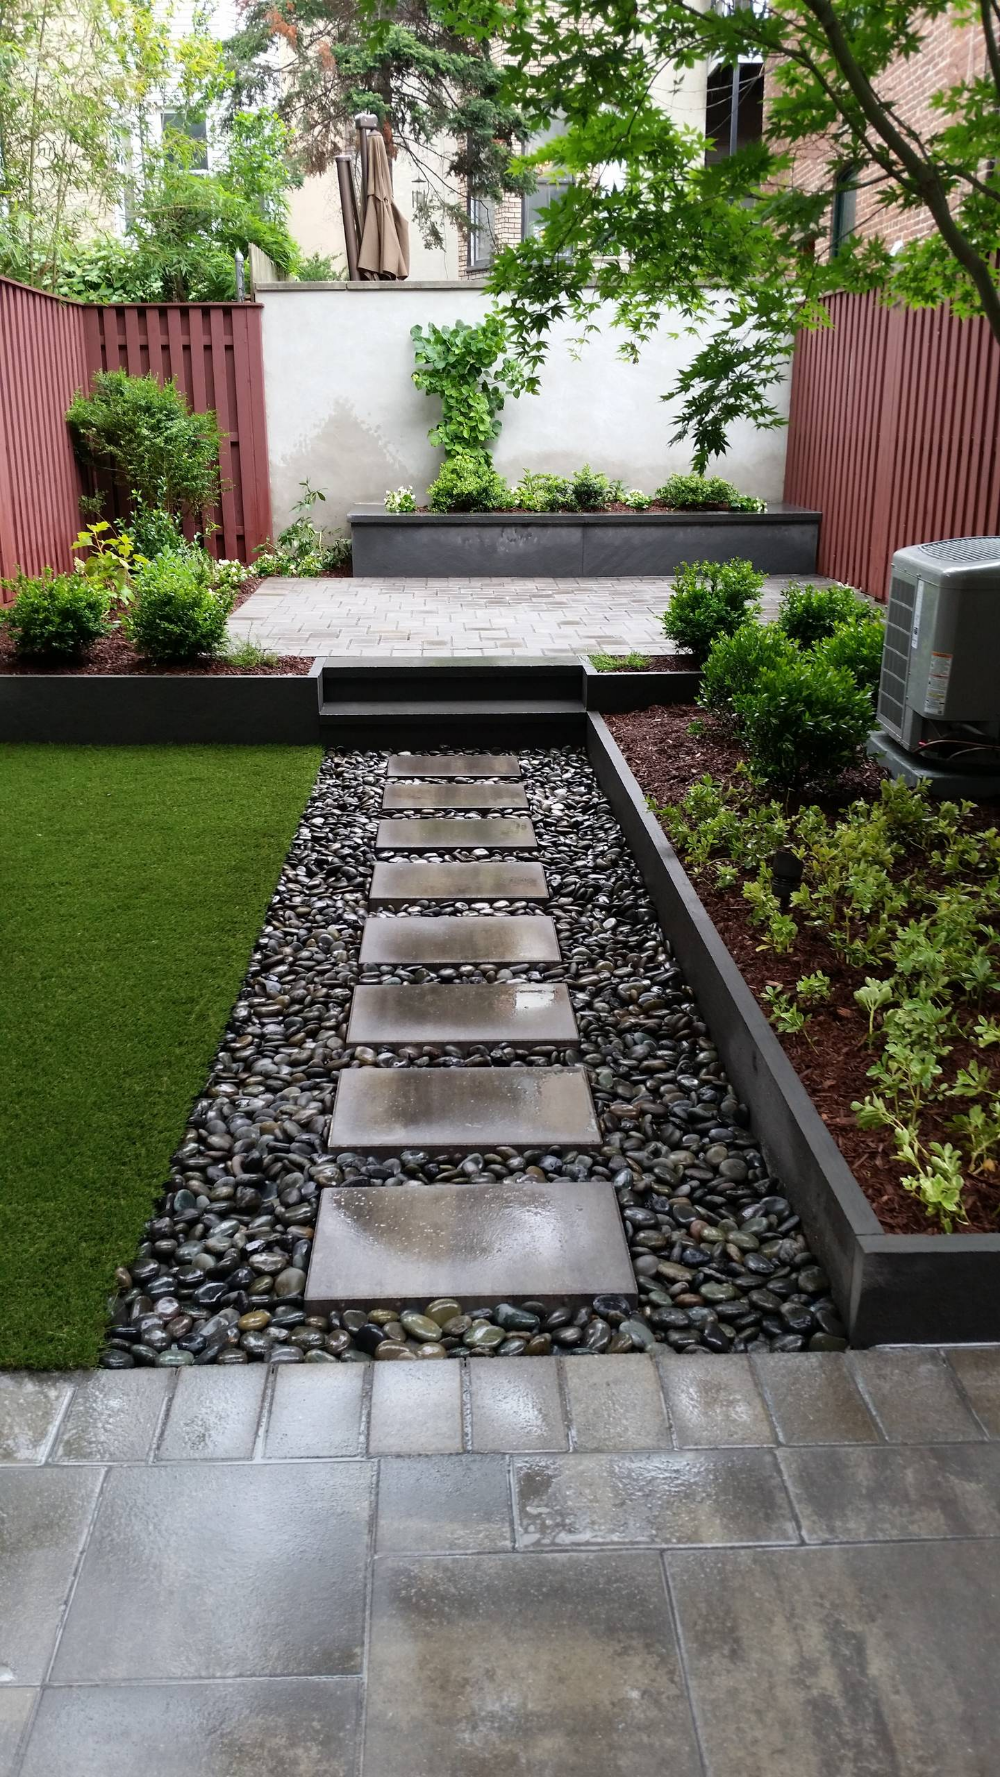 Stylish City Refuge Contemporary Patio New York By Hufnagel Landscape Desi In 2020 Small Backyard Landscaping Backyard Landscaping Backyard Landscaping Designs